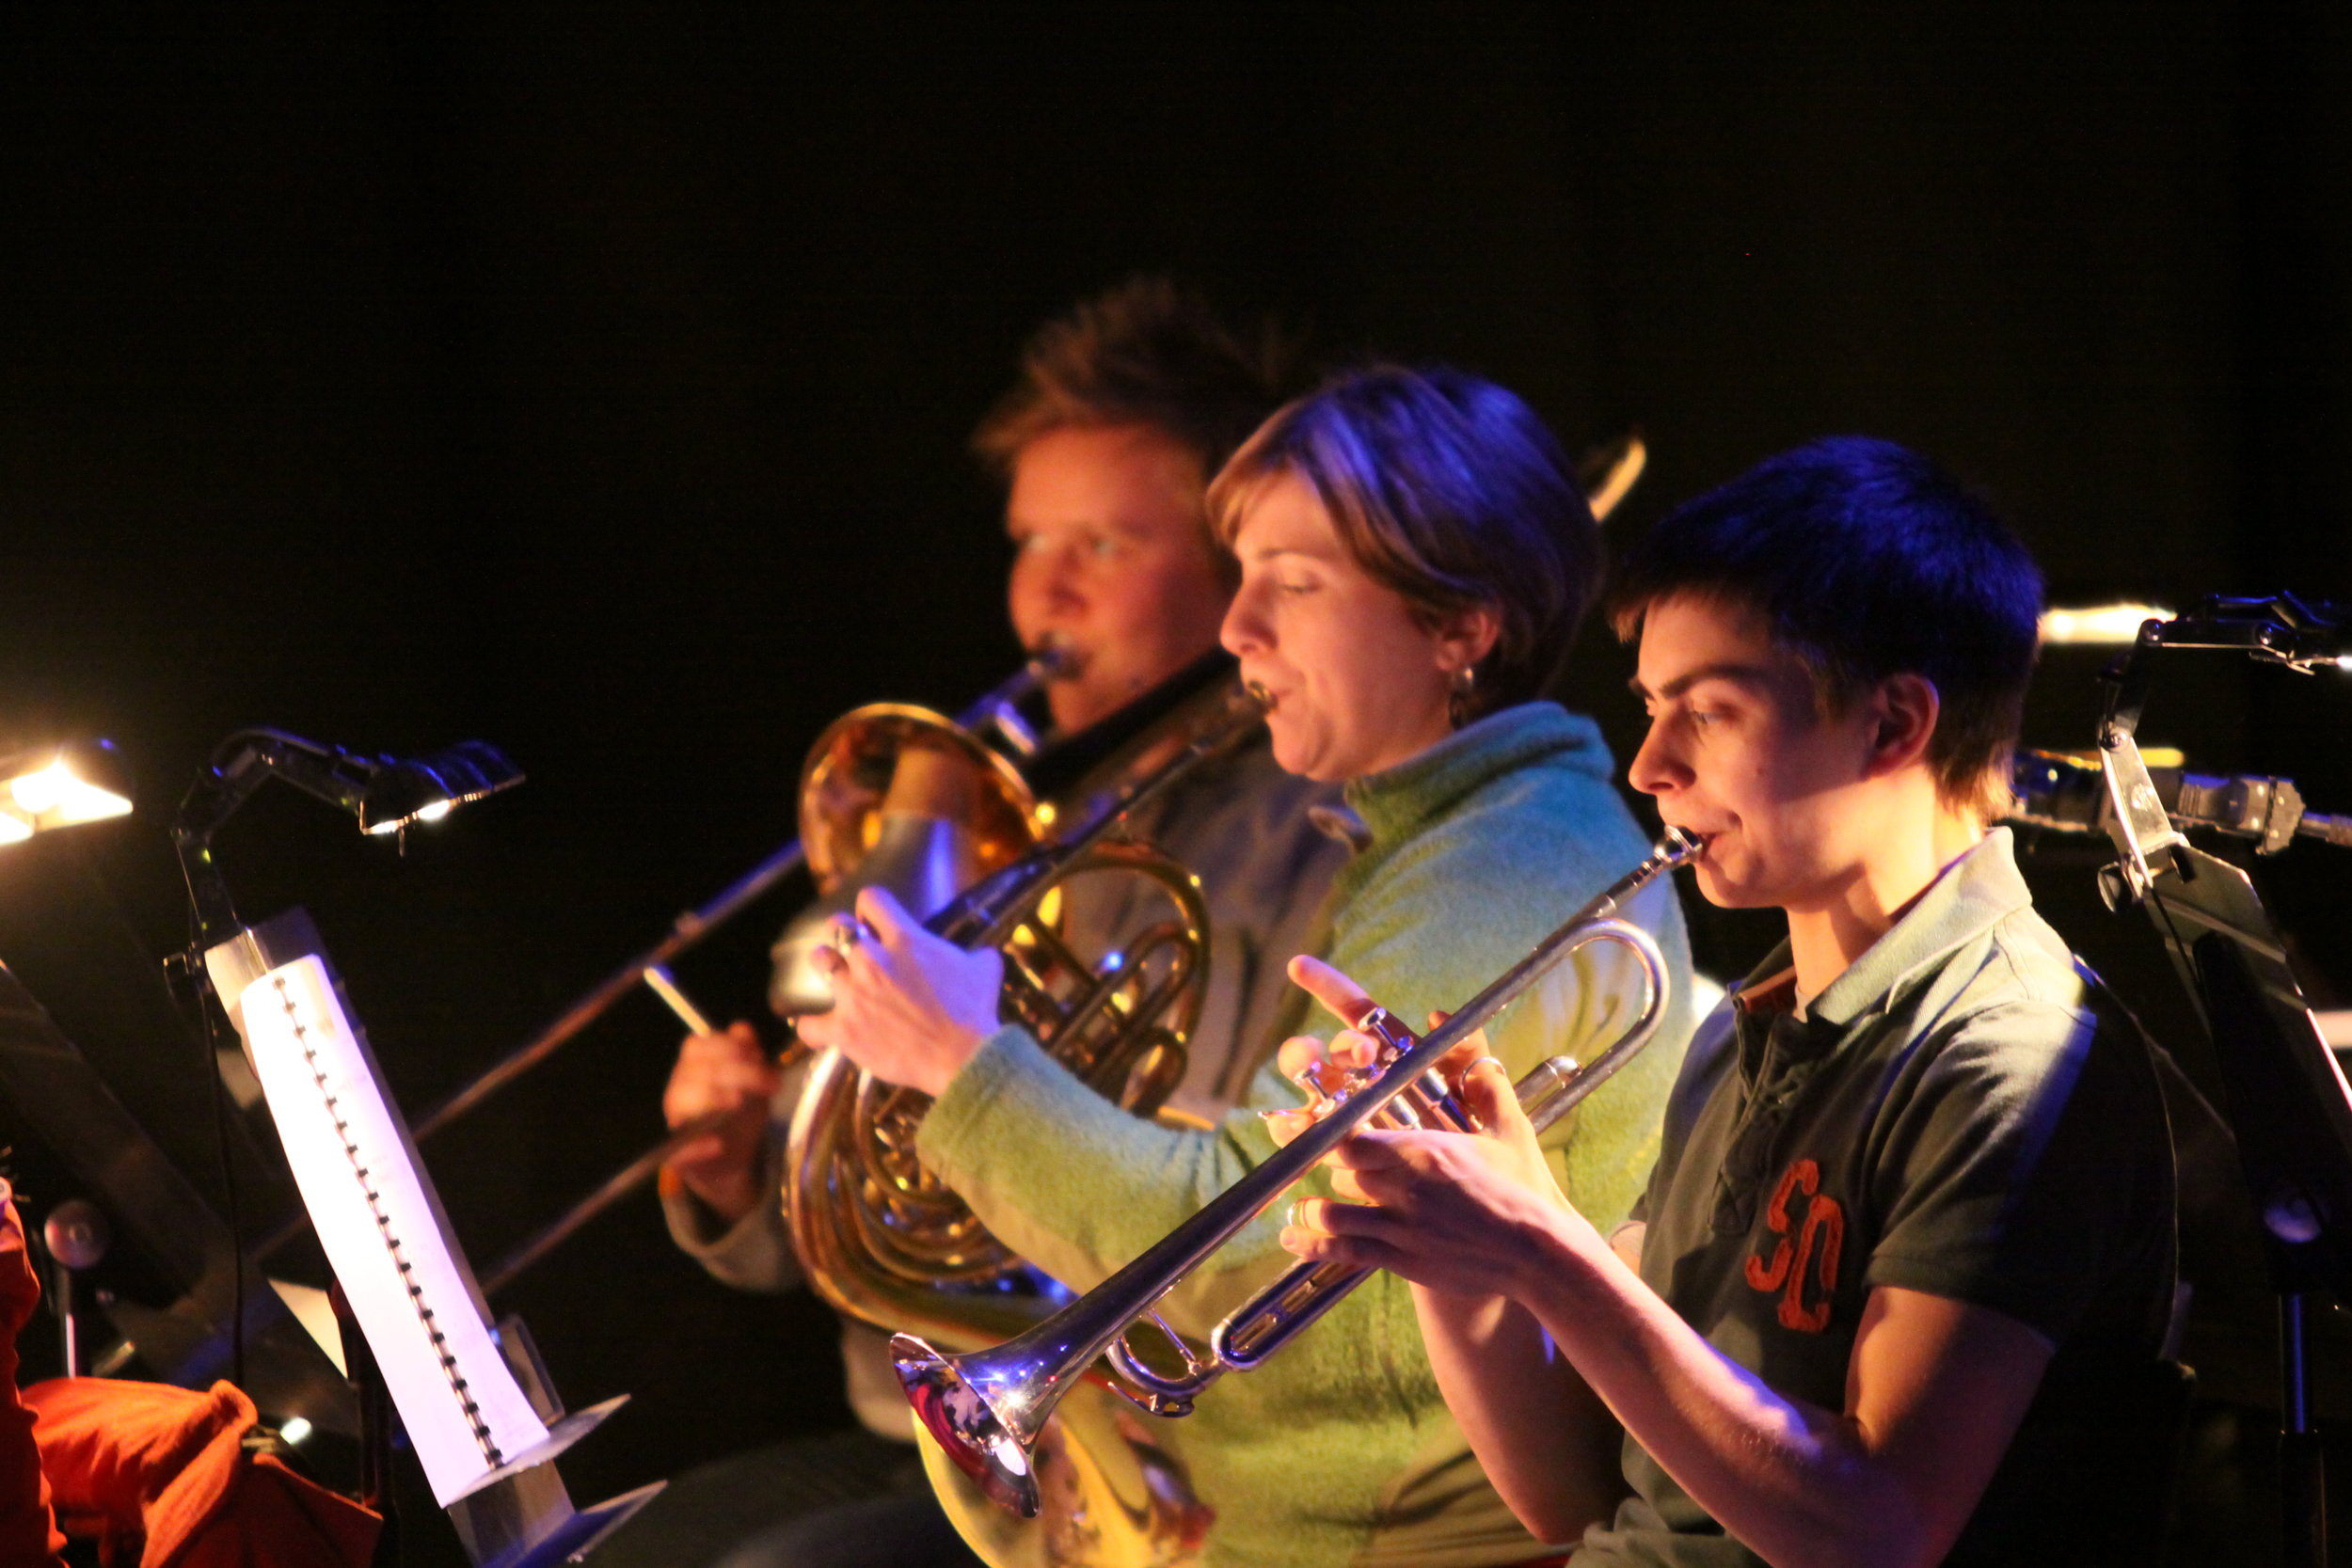 Ellen Campbell, Ellie Verkerk & Tom Griffiths in The Forbidden Fruit orchestra, Brighton Festival, Brighton Dome, composed by Jude Obermüller (photo by Sarah Sutherland-Rowe)